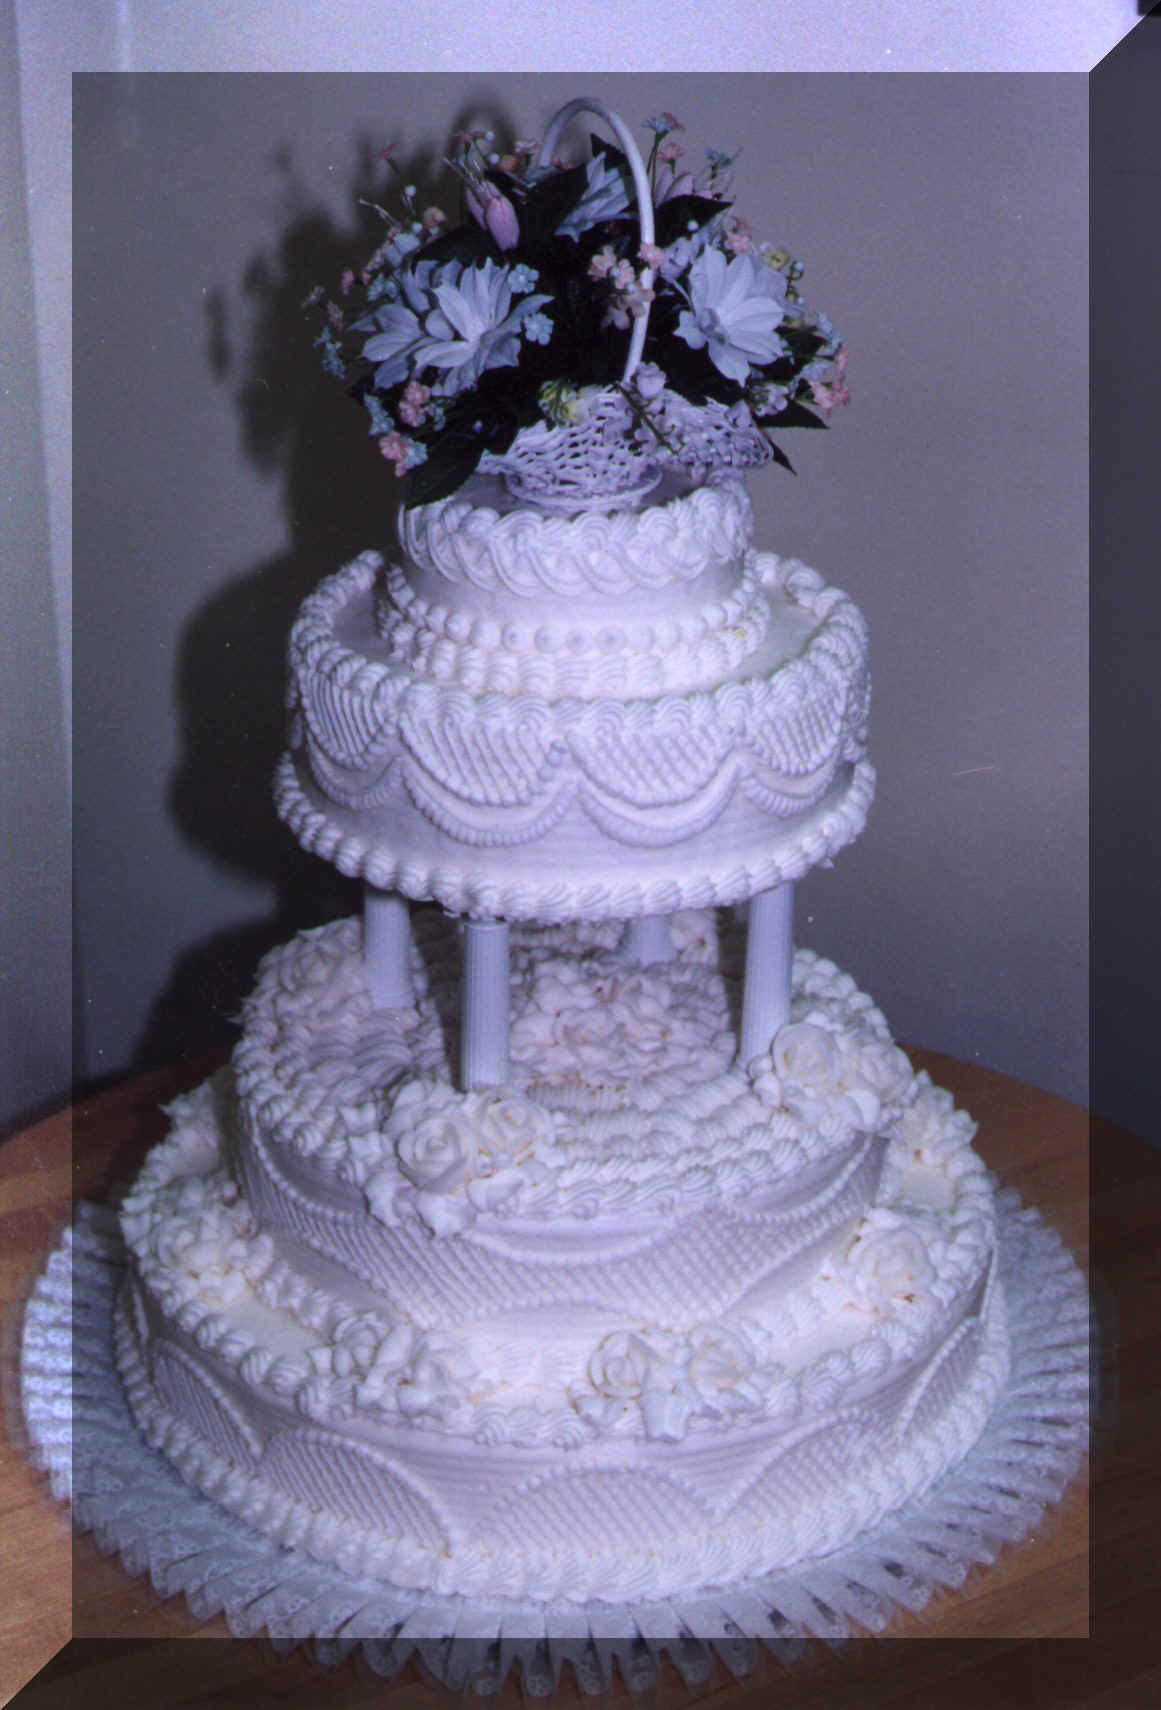 Wedding Cakes Prices And Pictures  Walmart Wedding Cake Prices